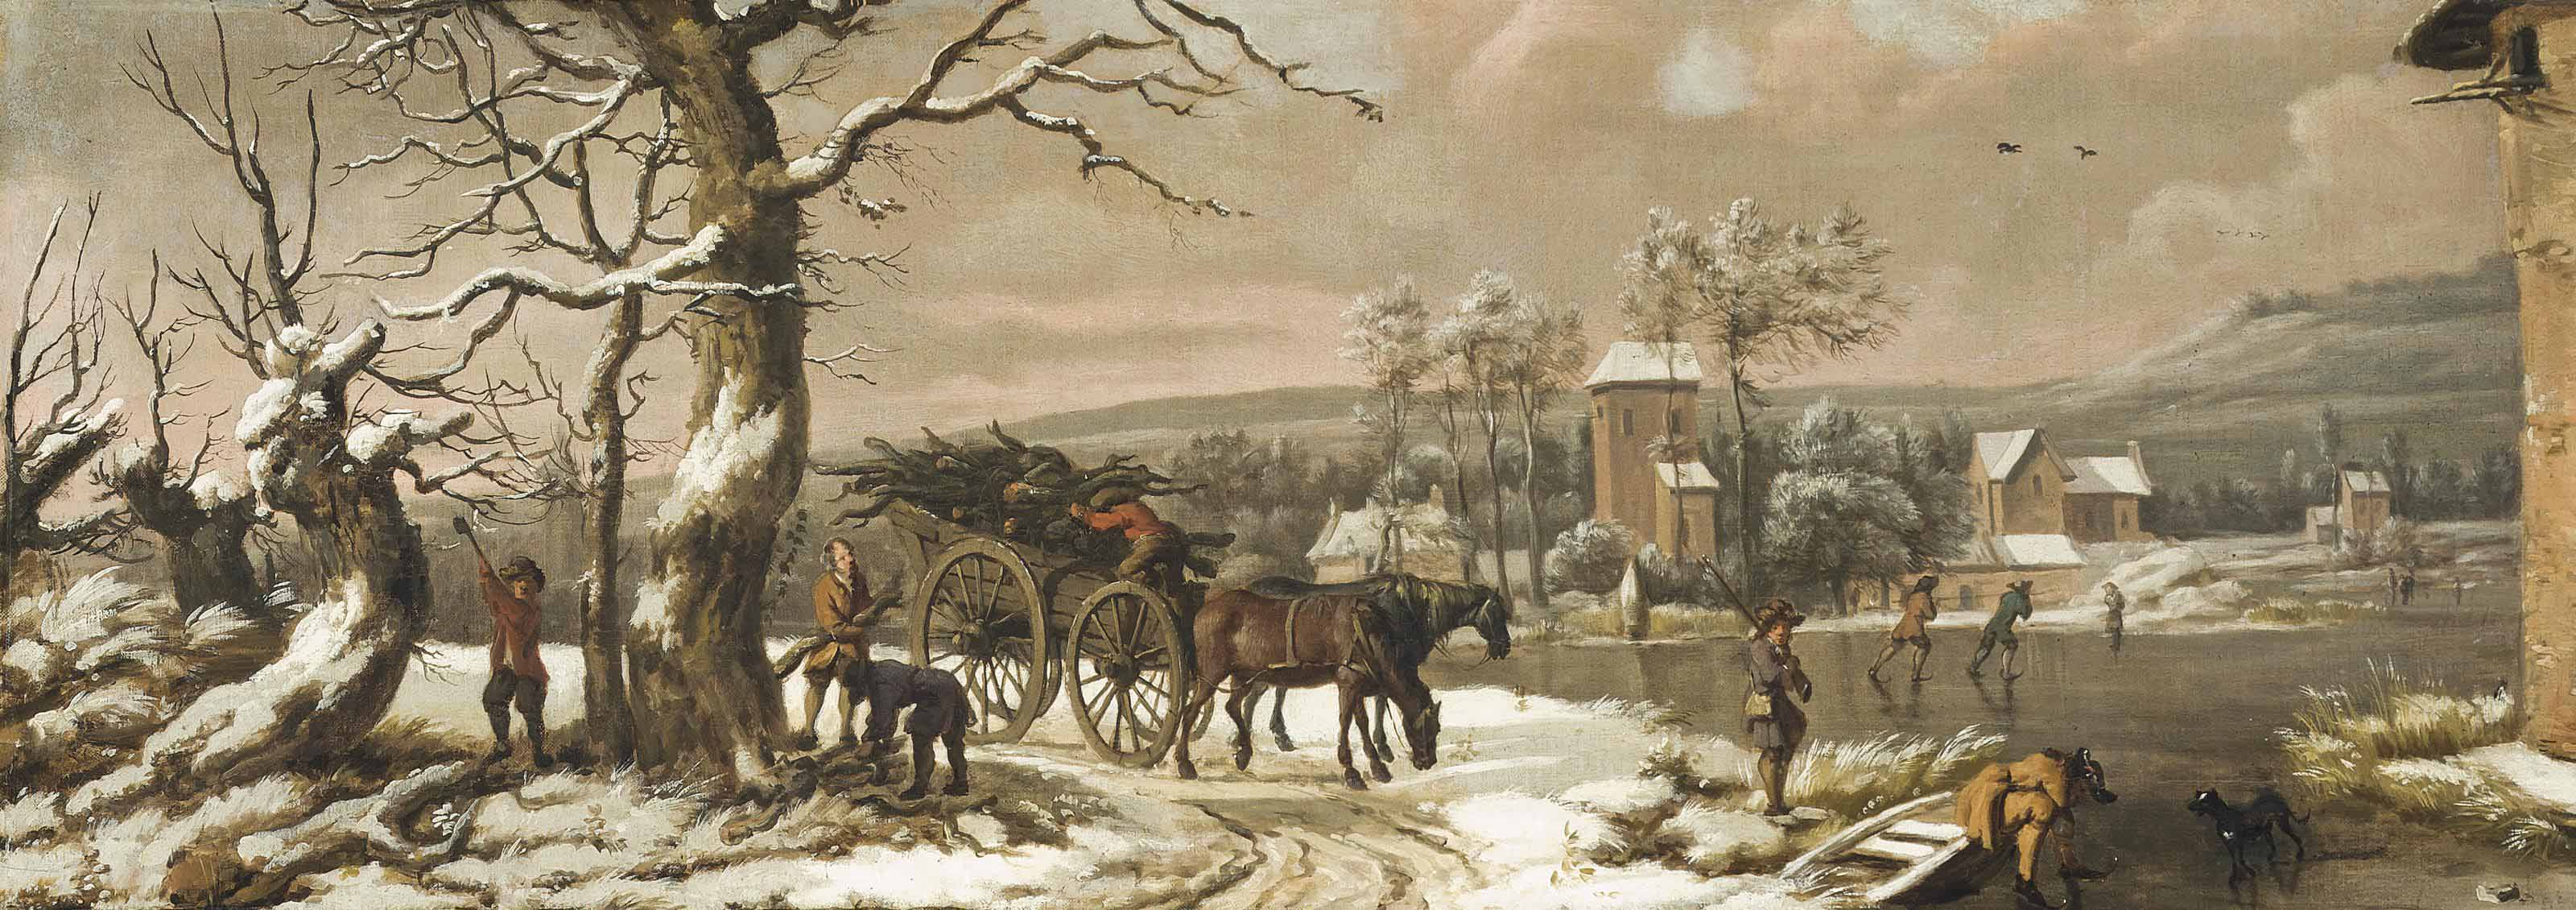 A wooded winter landscape with figures chopping wood beside a horse-drawn cart with skaters on a frozen river, a village beyond